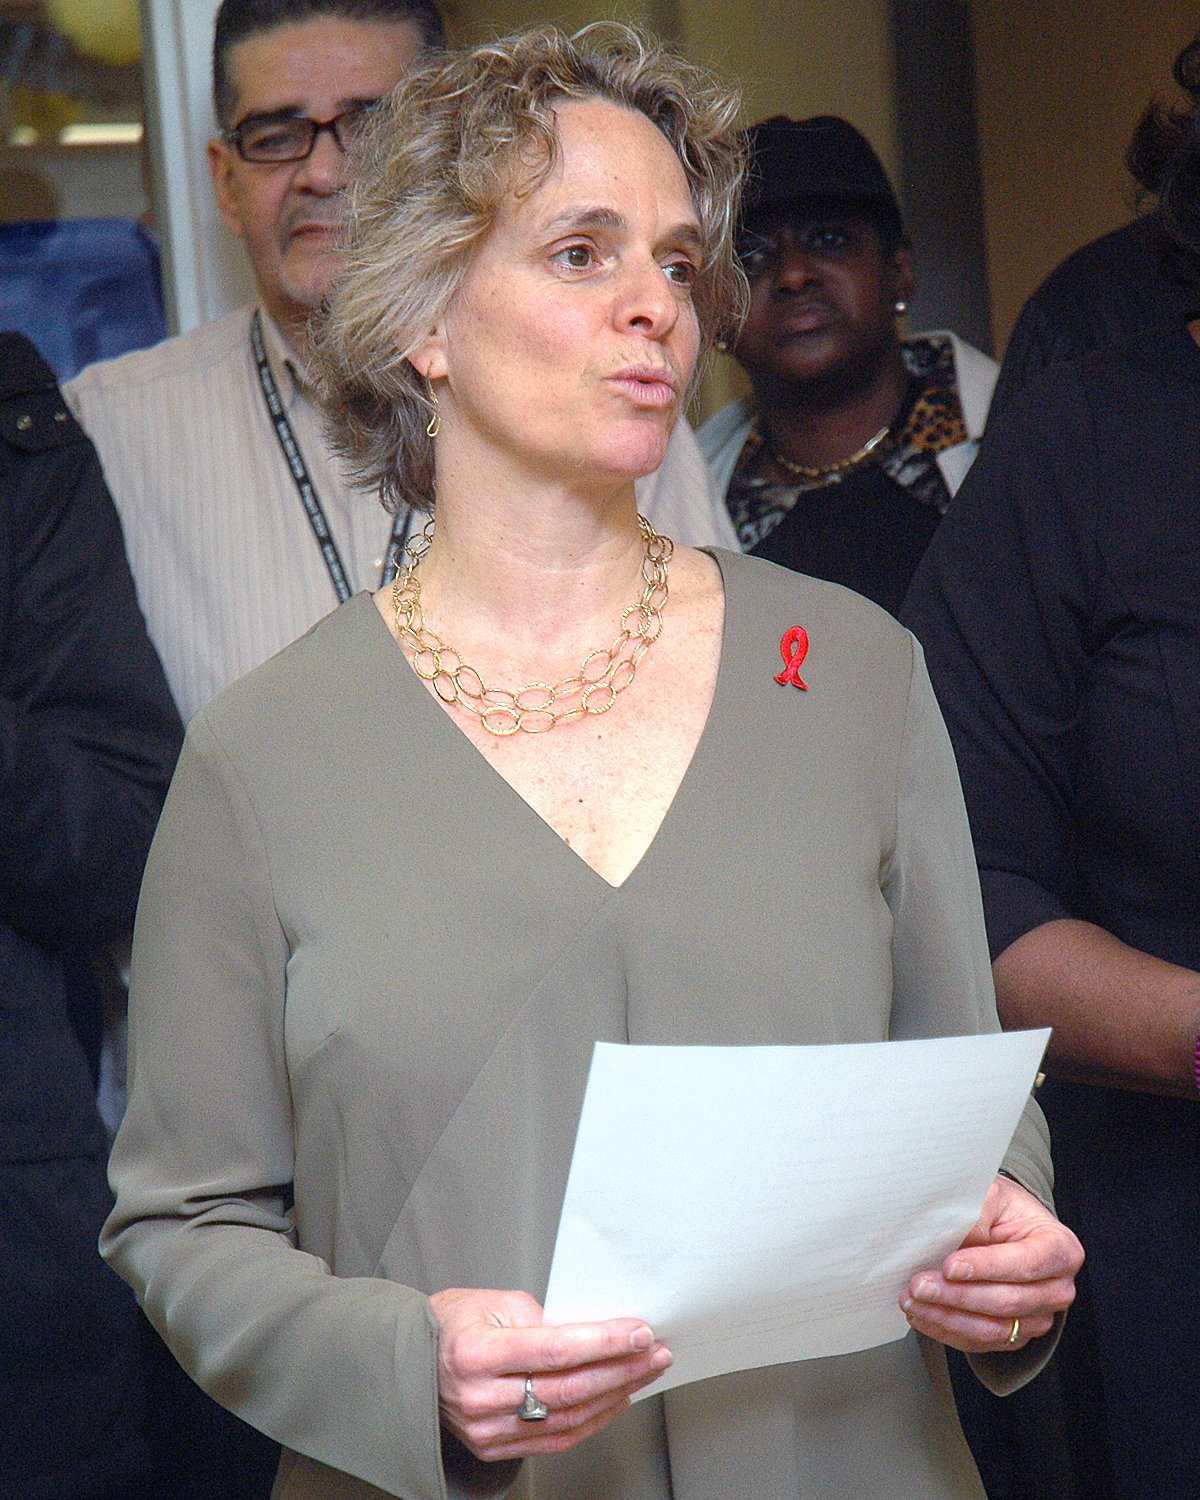 AIDS In Our Community: Reading of Names - Sharen Duke, Executive Director/CEO